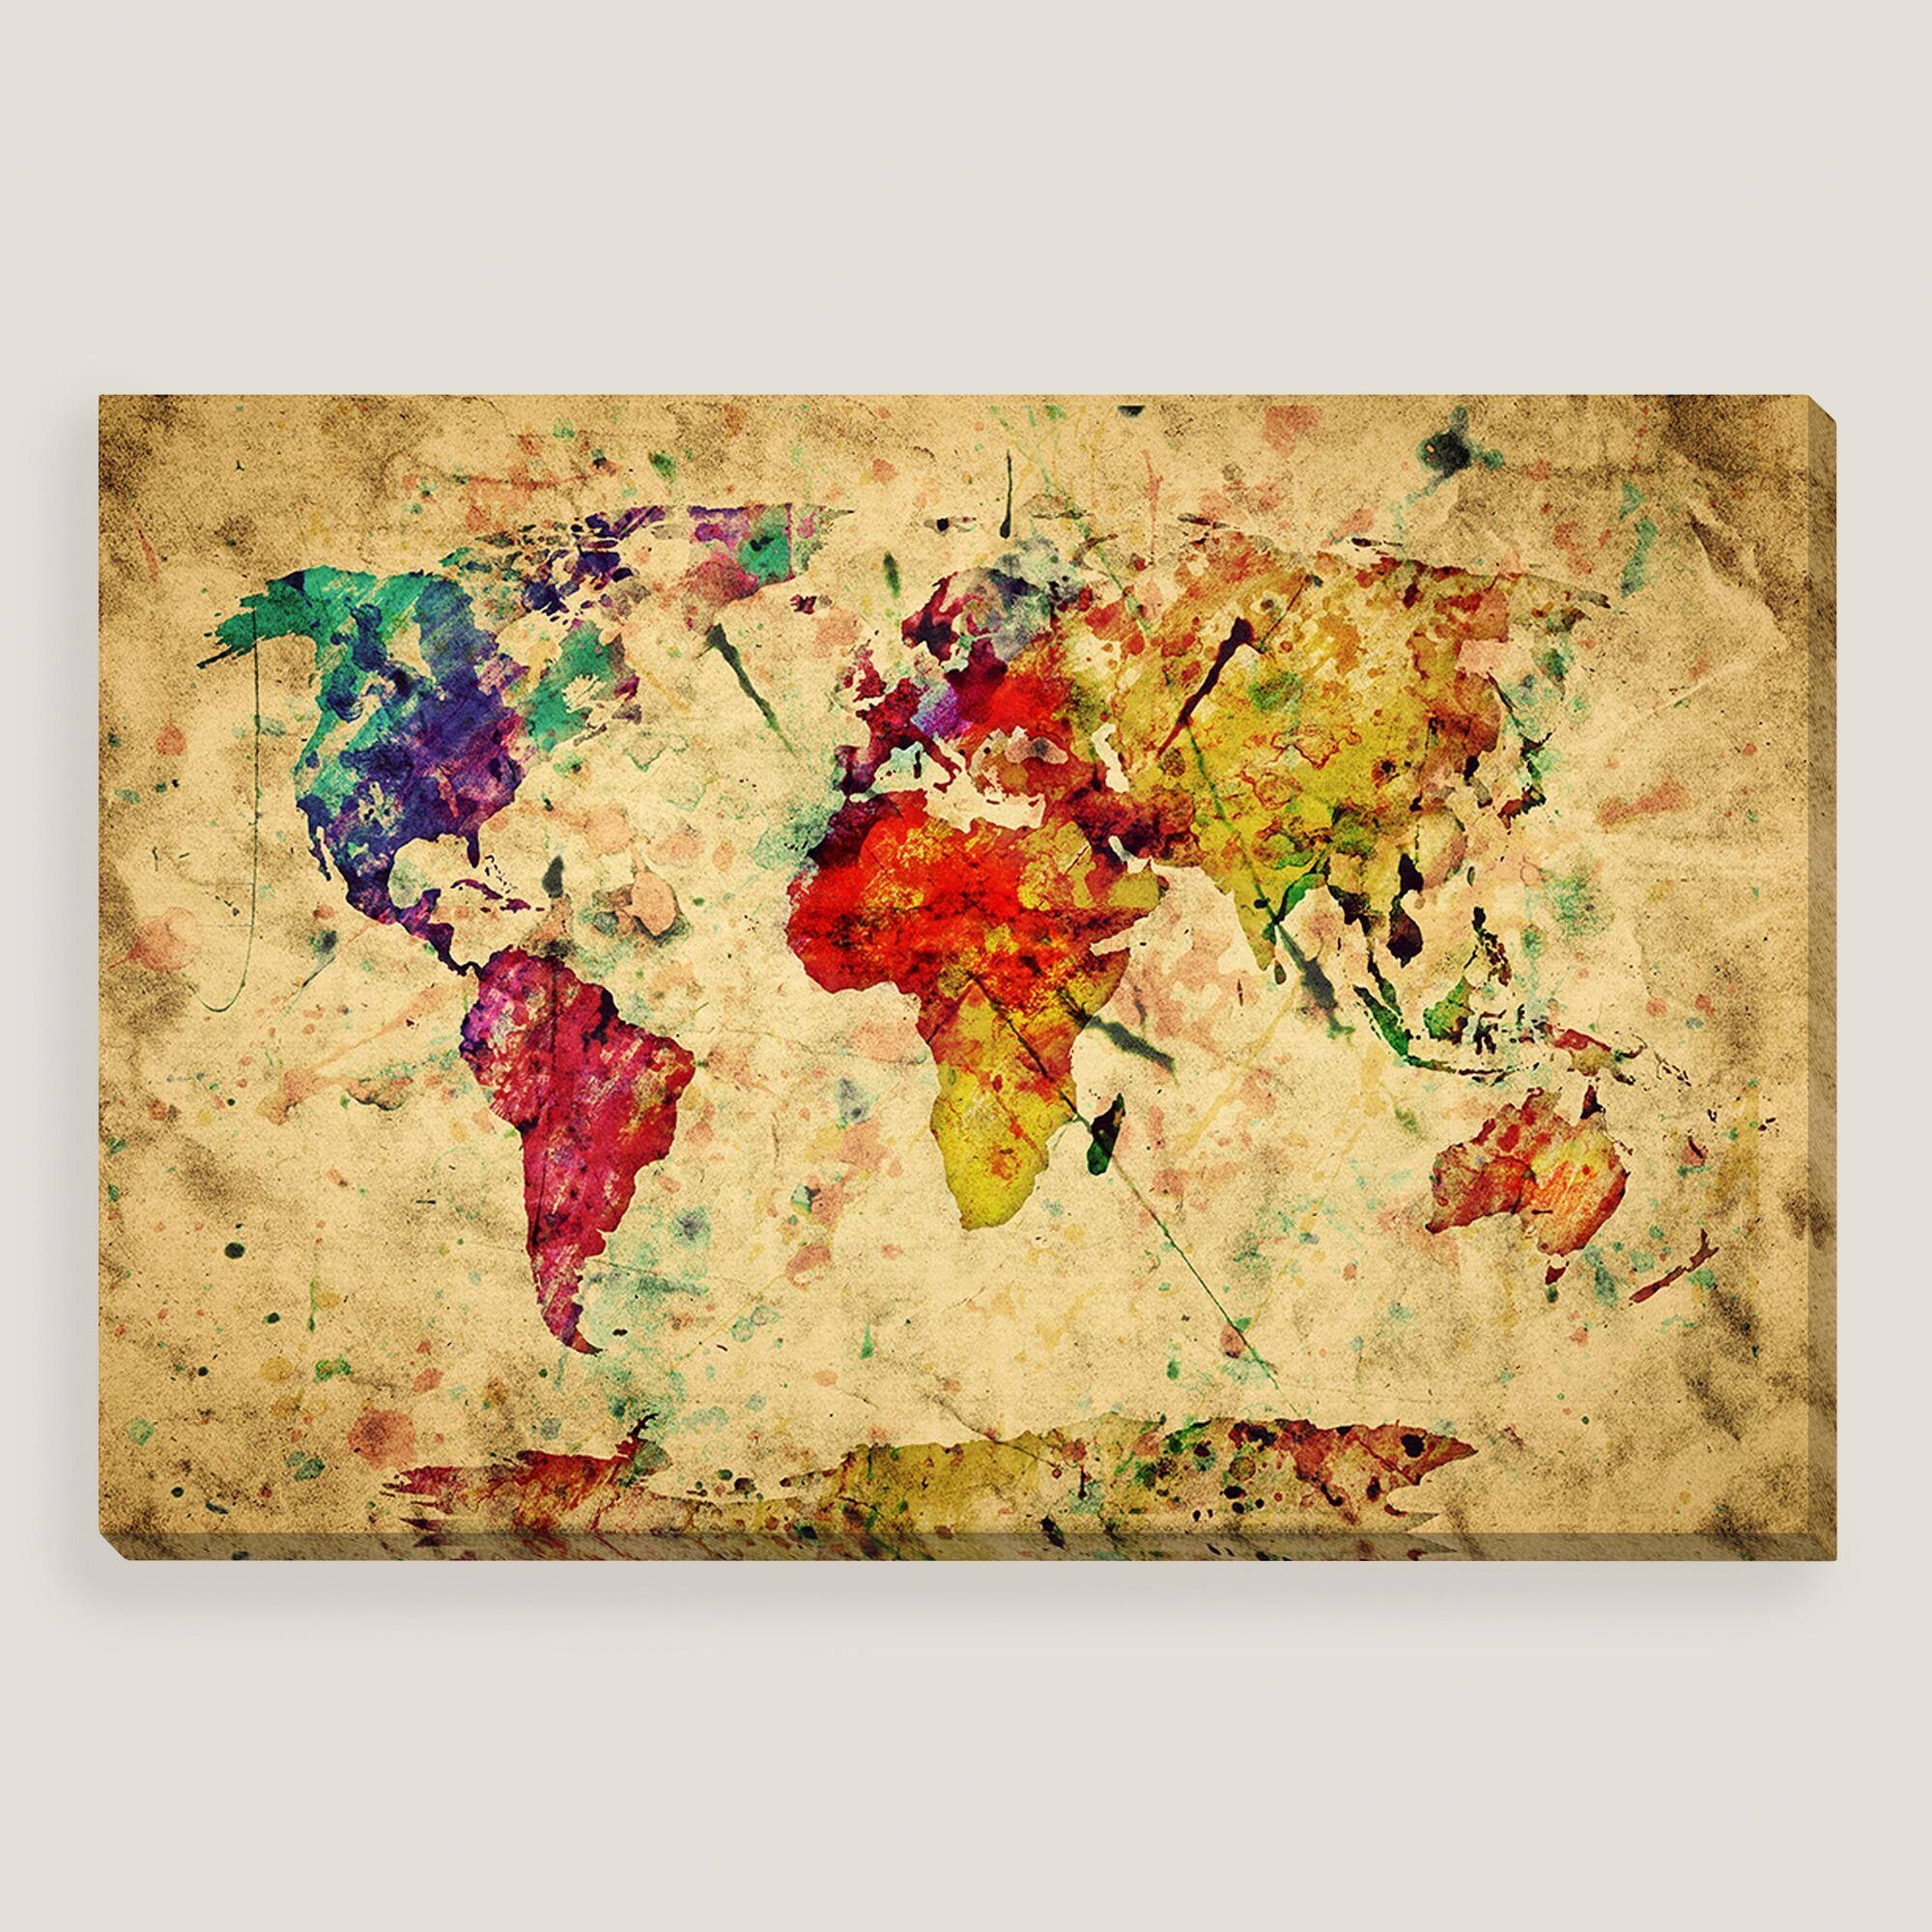 Wall Art Design Ideas: Modern Painting Vintage World Map Wall Art In Most Recently Released Old World Map Wall Art (View 6 of 20)